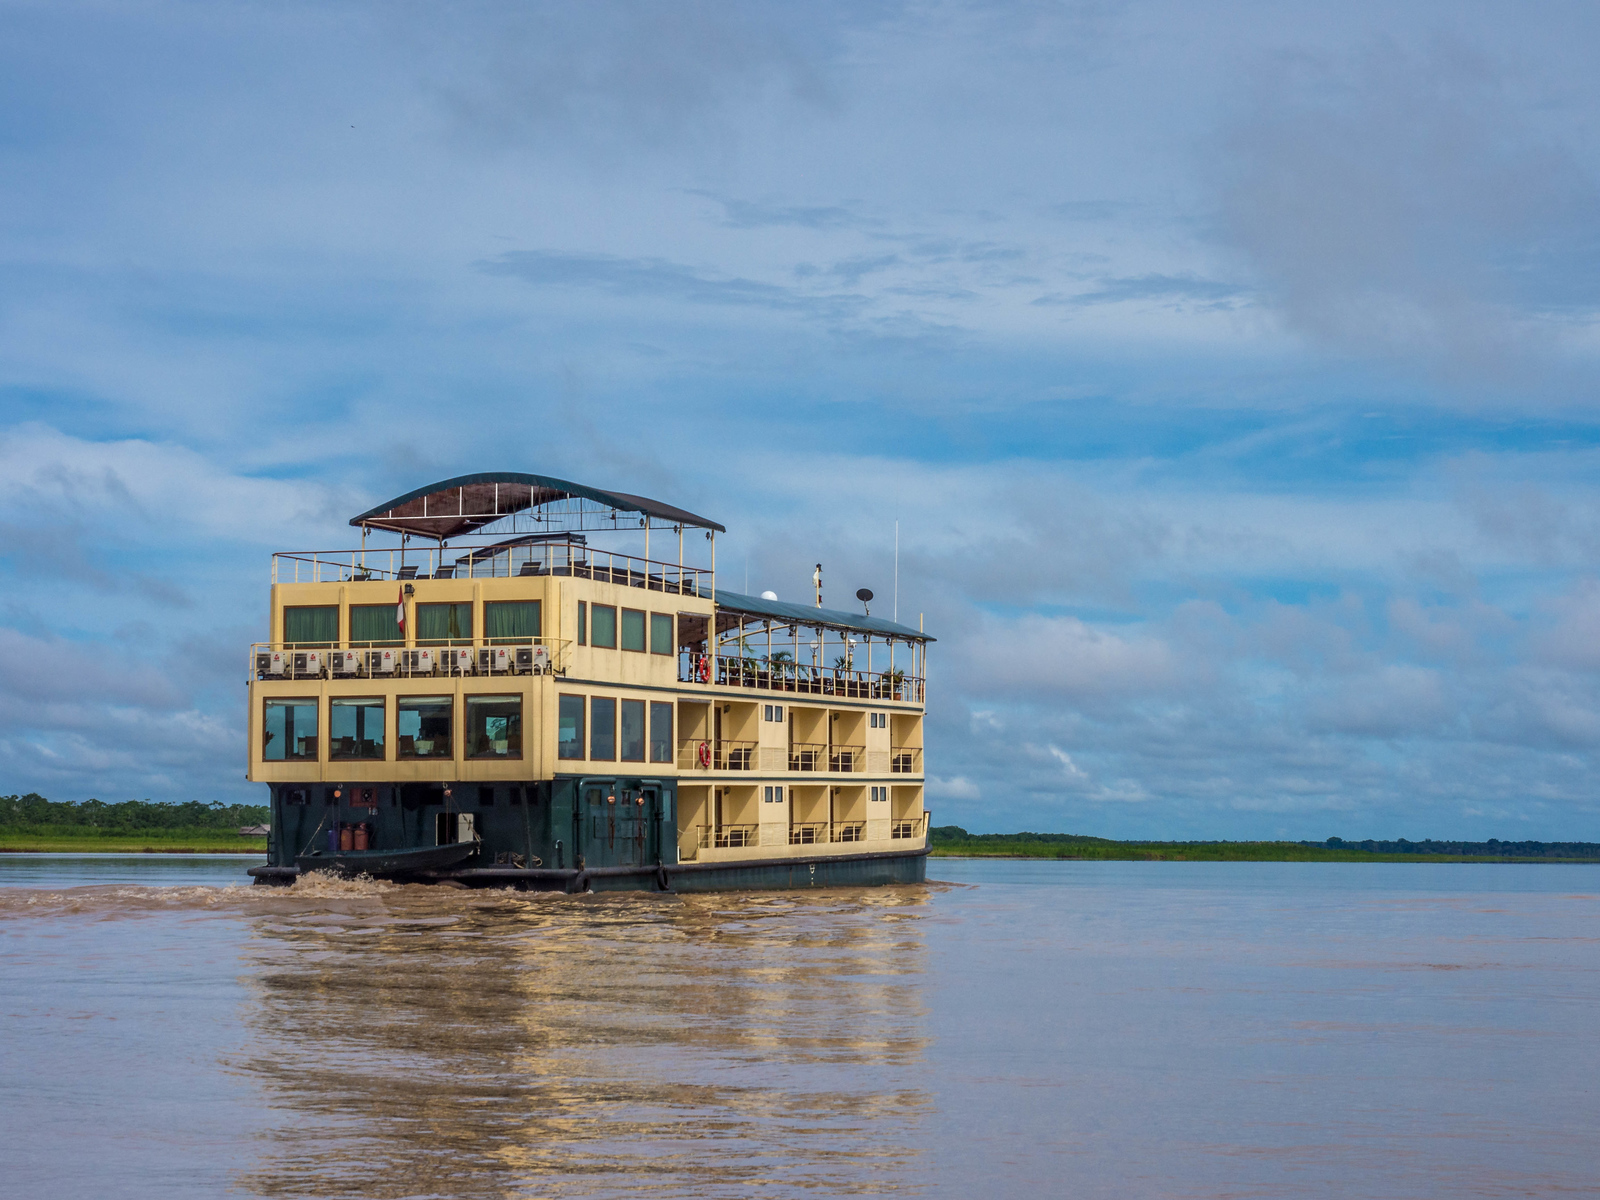 Our International Expeditions River Boat